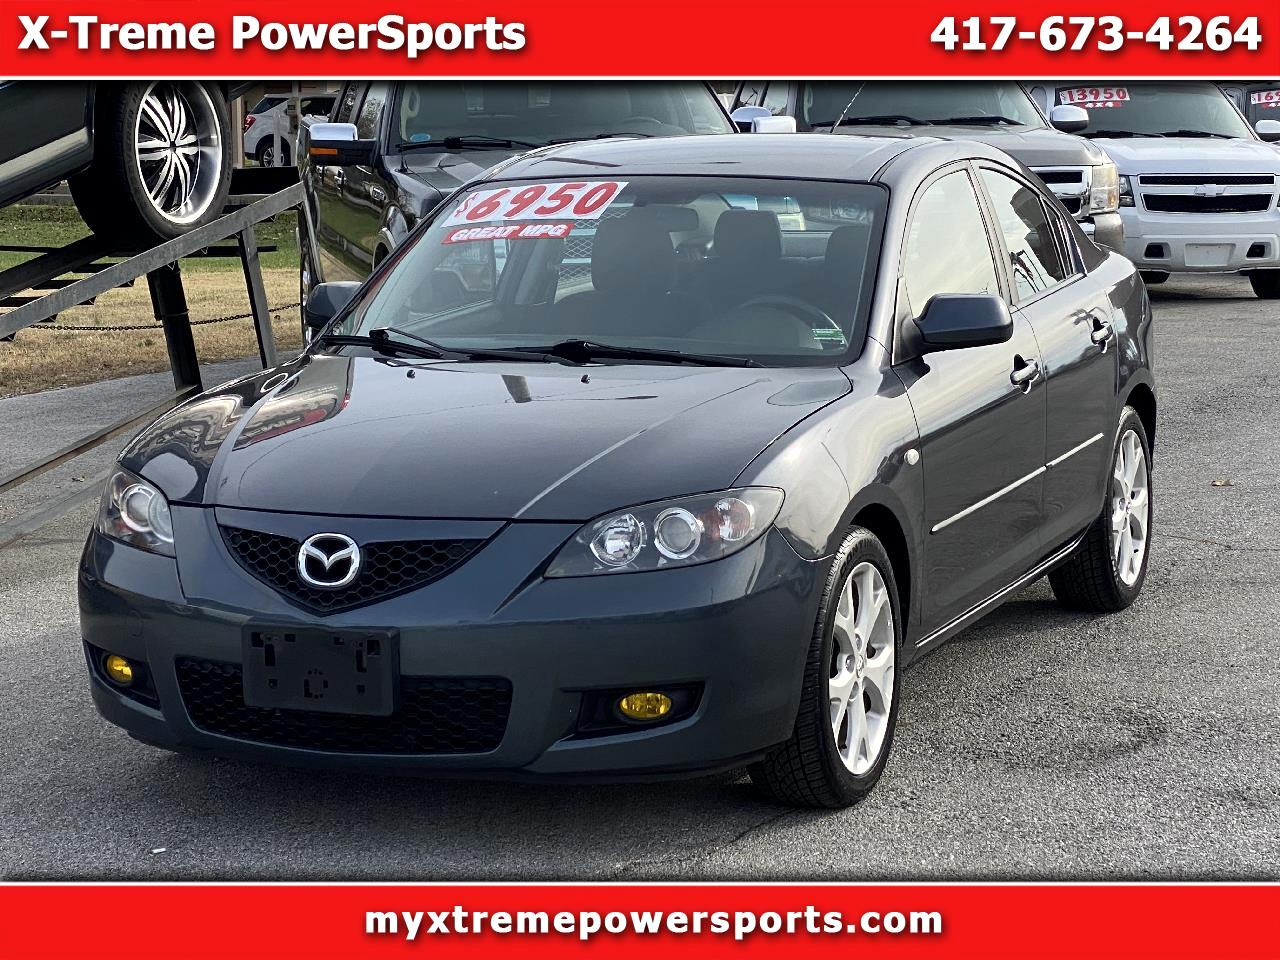 Mazda MAZDA3 4dr Sdn Auto i Touring Value 2009